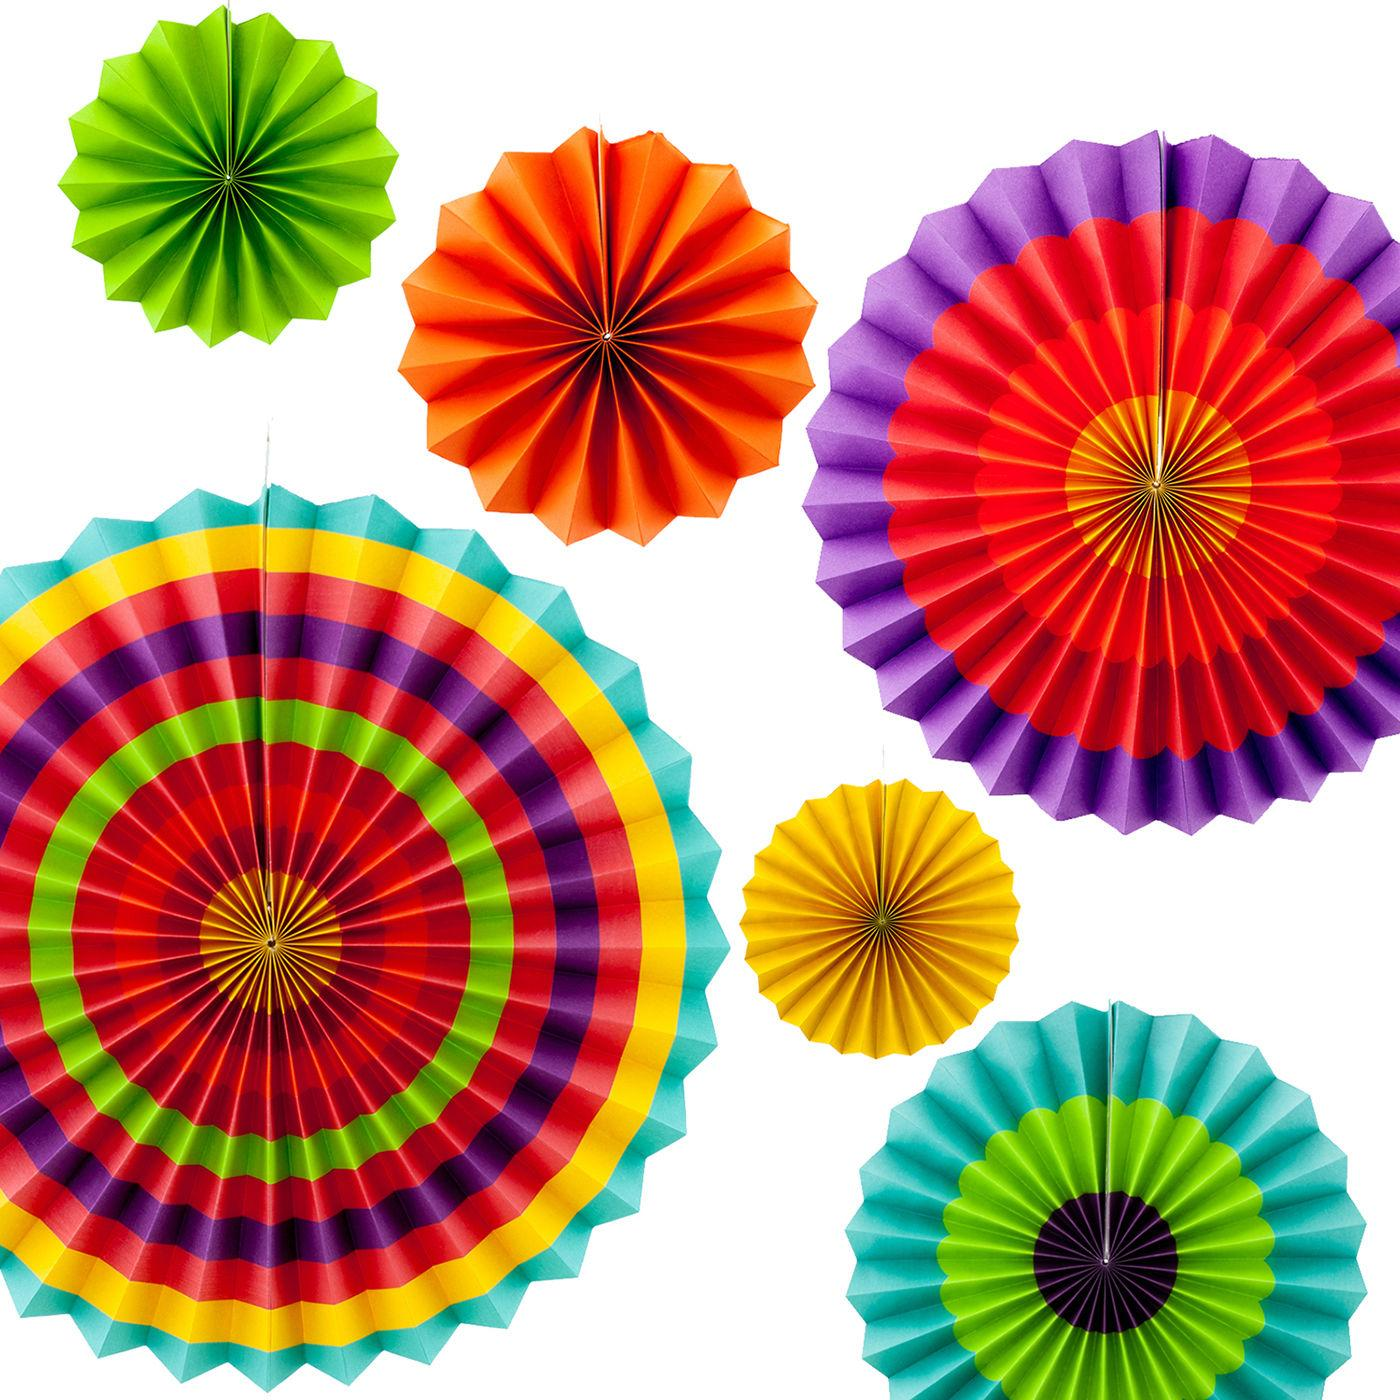 Fiesta Decorations Png & Free Fiesta Decorations.png